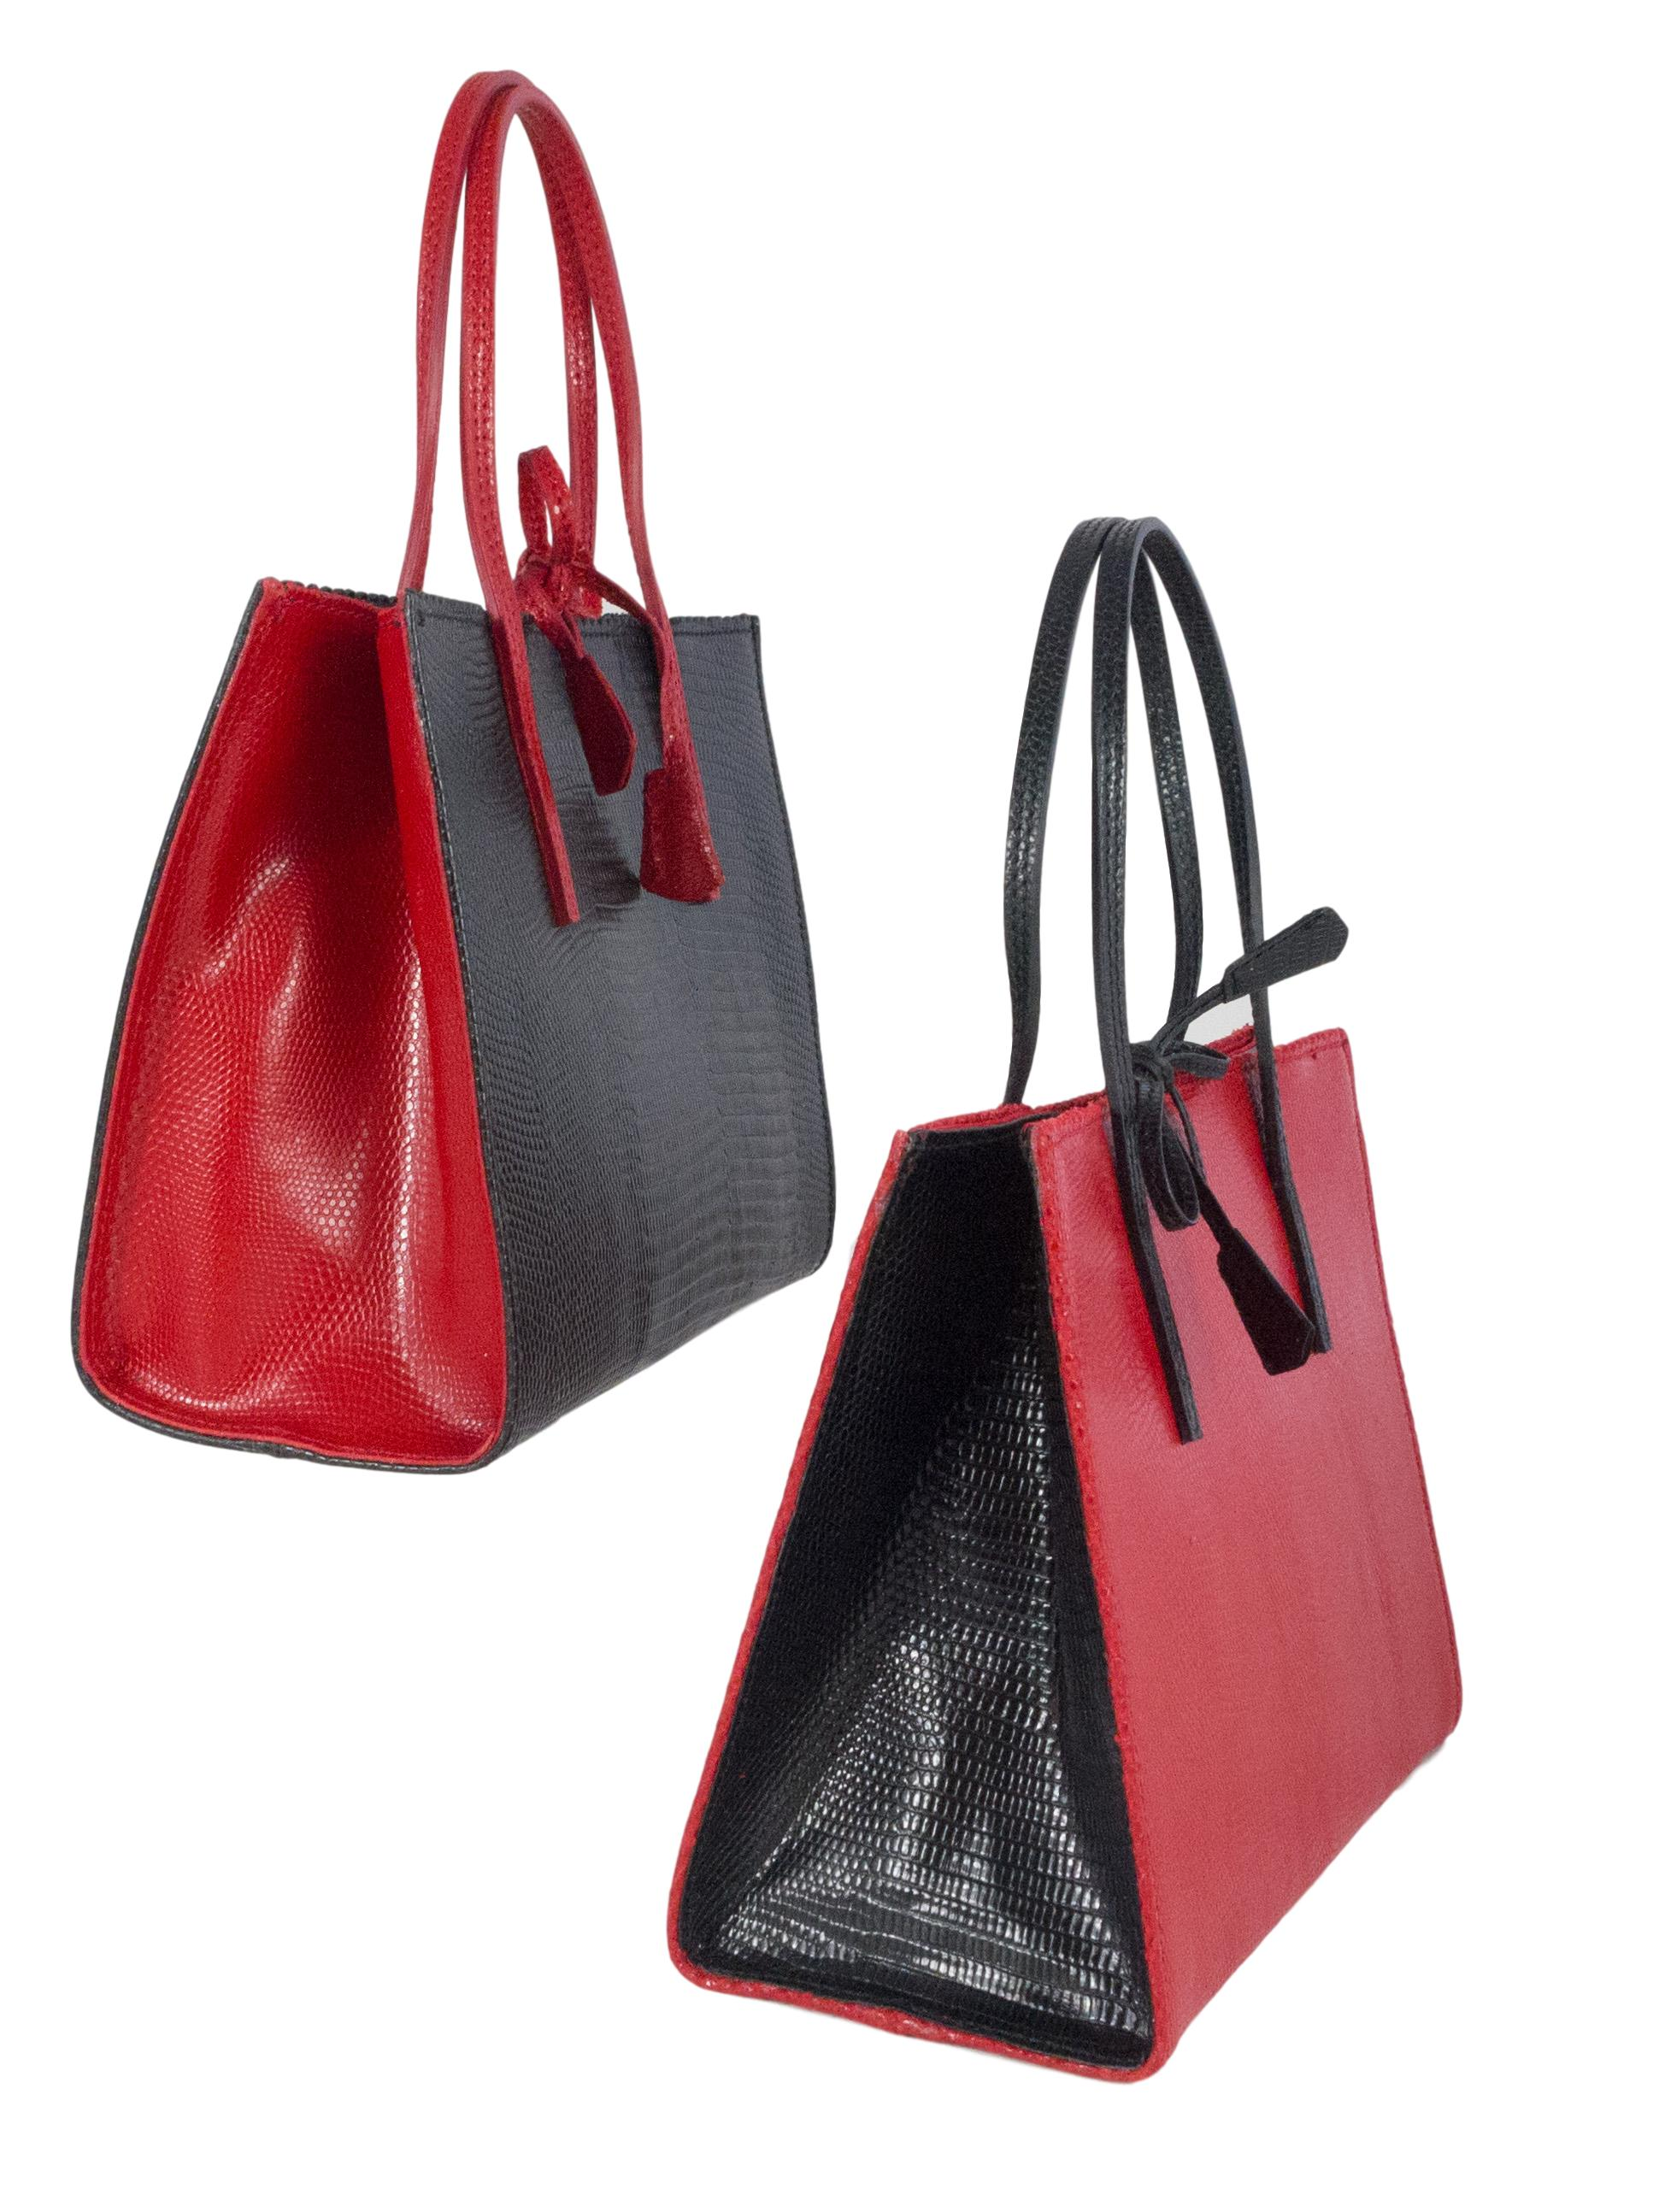 2 tone black and red mock lizard occasion leather bags